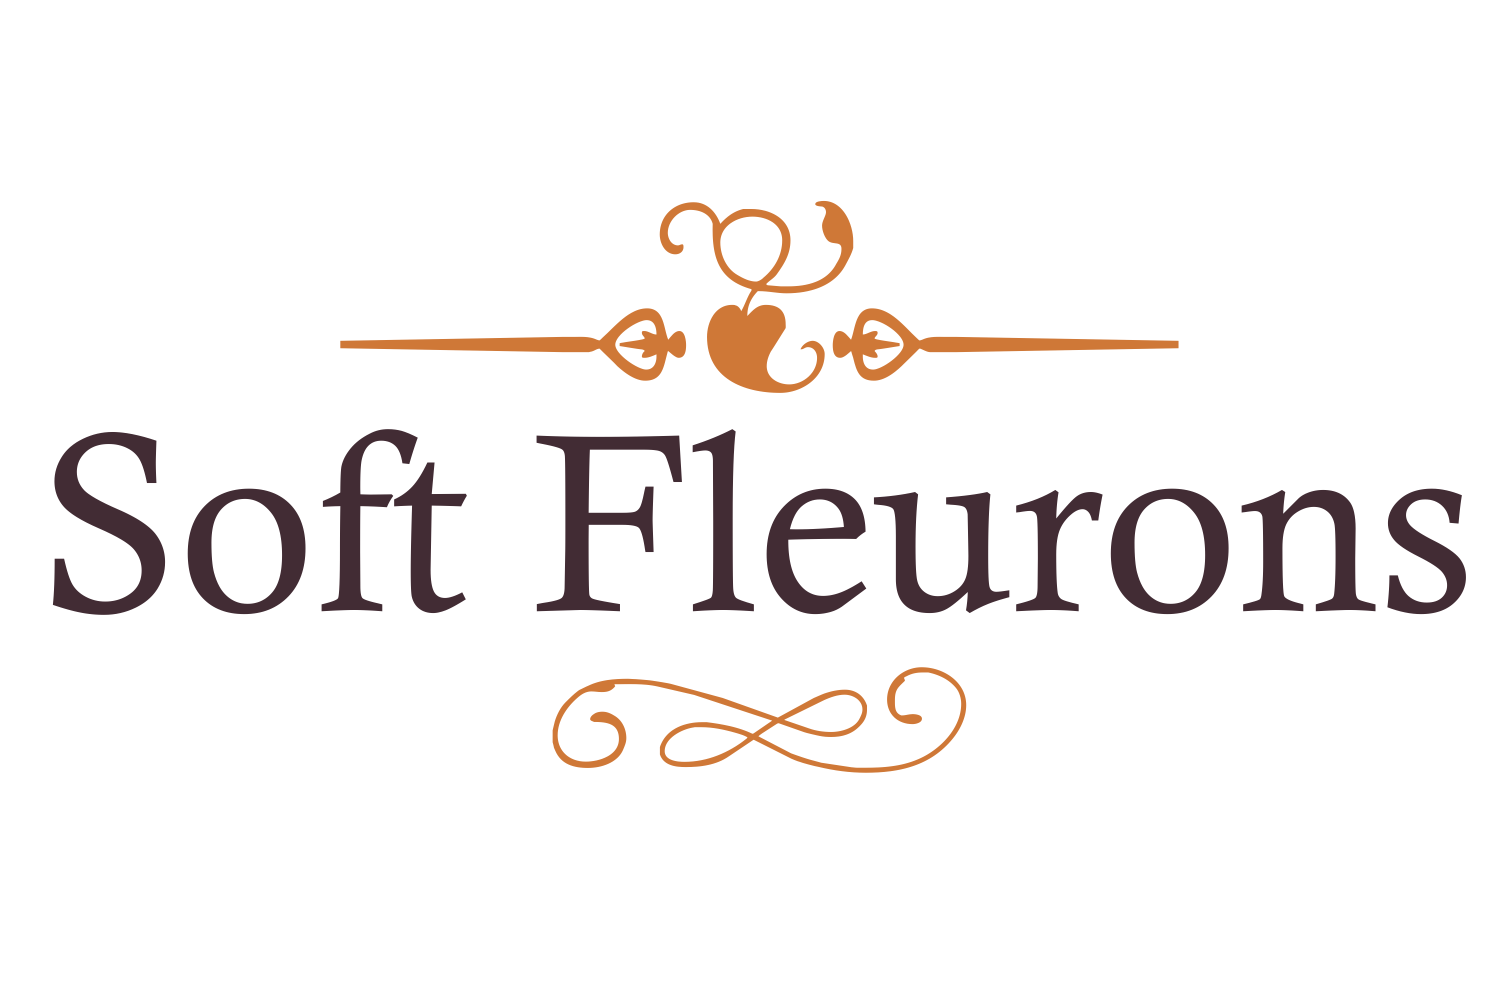 Soft Fleurons example image 3